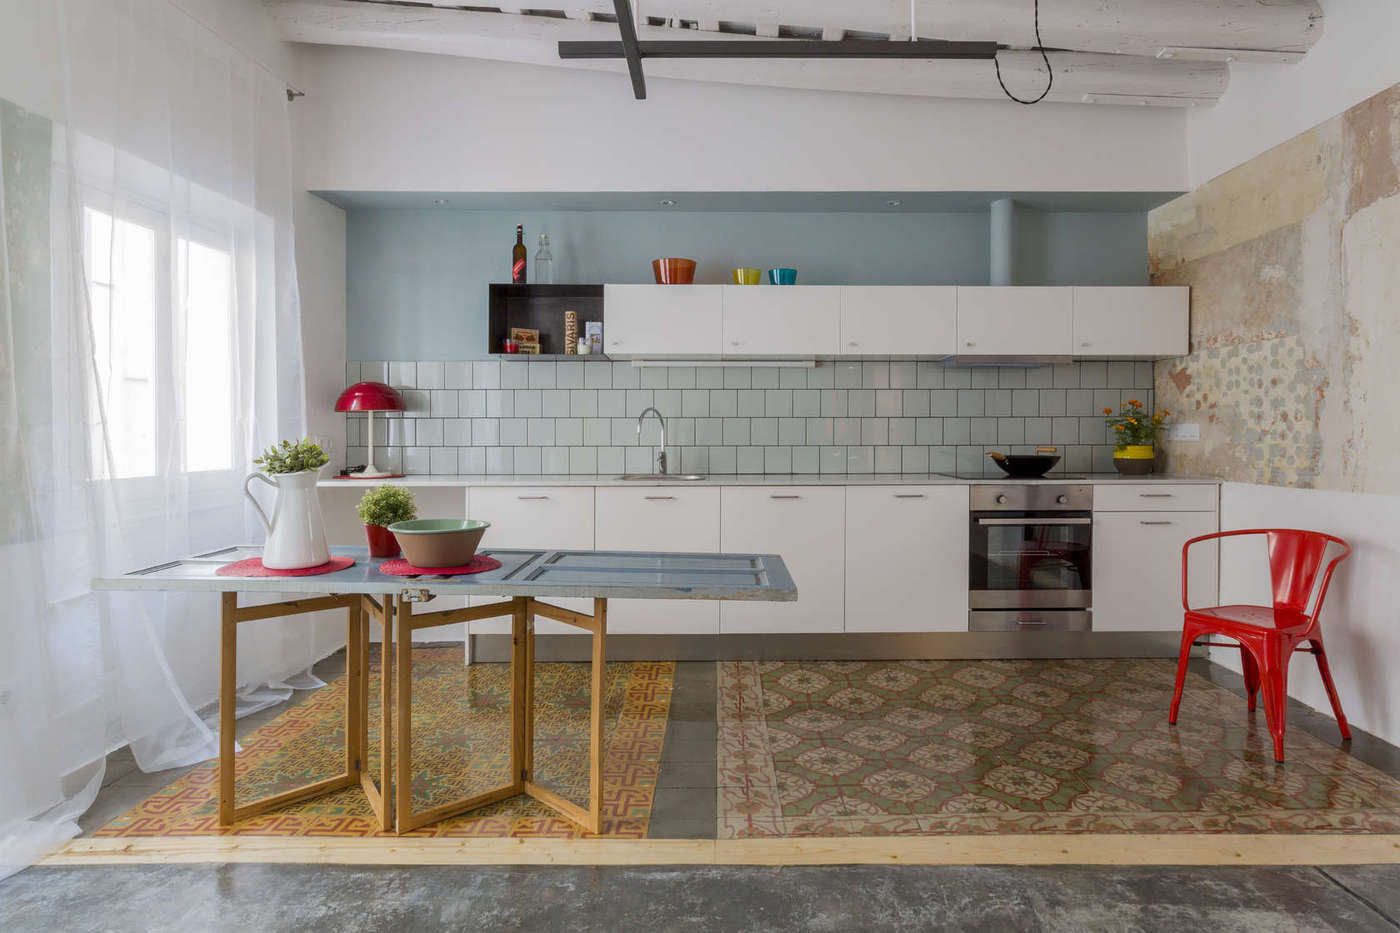 4 tile rug designs in one small appartment